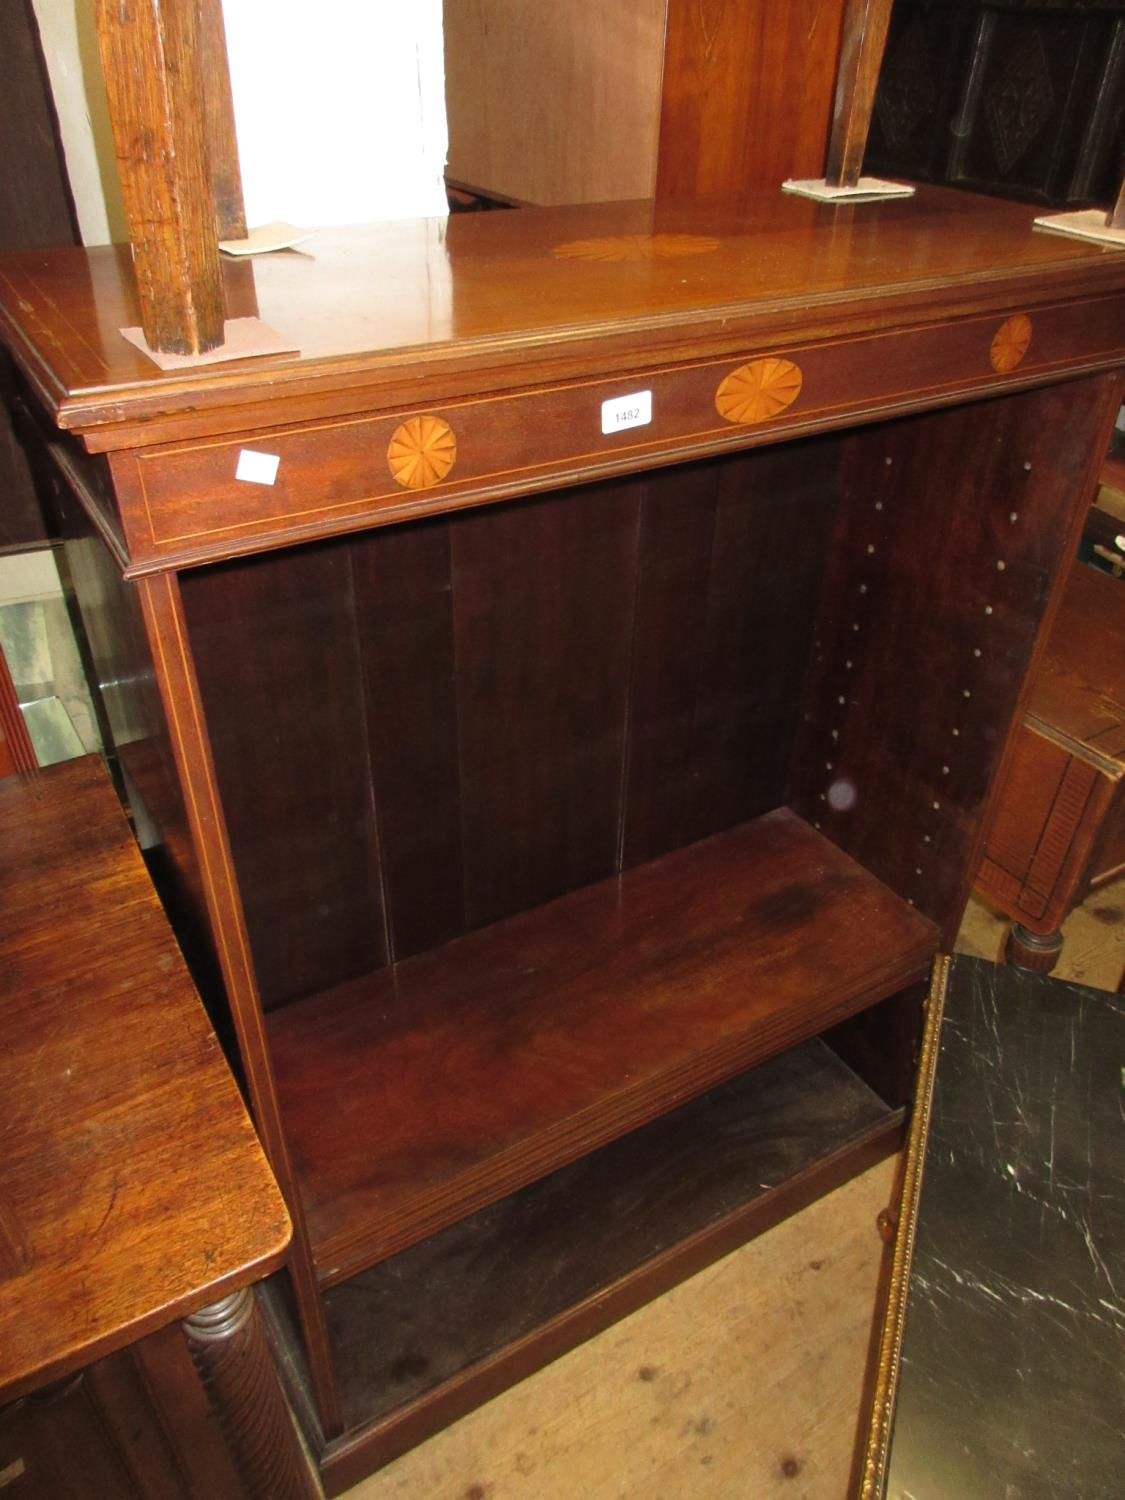 Edwardian mahogany line and shell inlaid open book case, having three adjustable shelves on a plinth